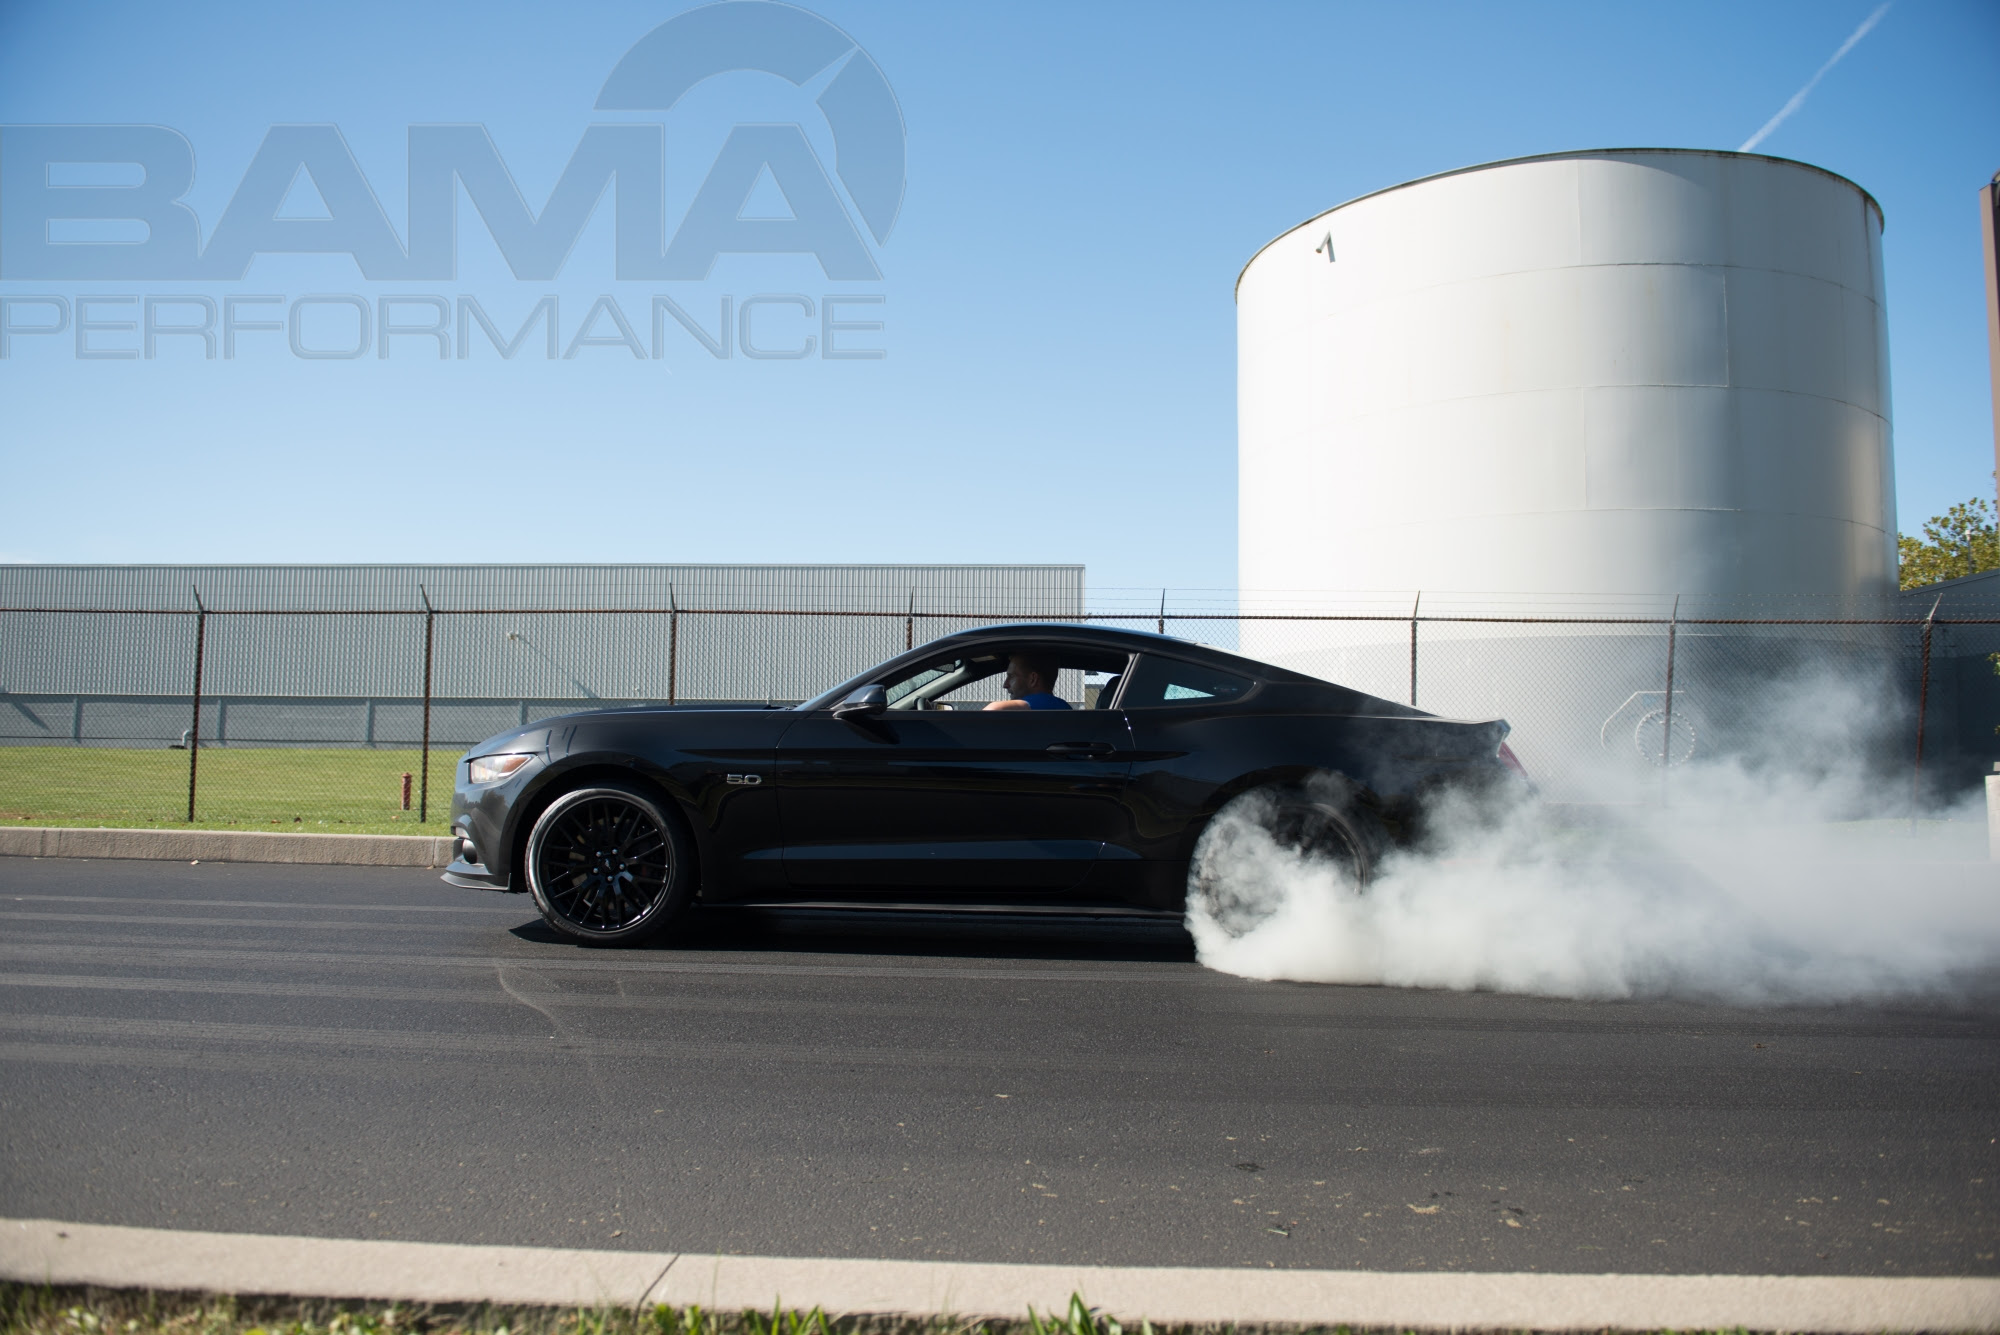 Video: Bama Performance Makes Over 400RWHP Tuning A Stock 2015 GT | 50 ...